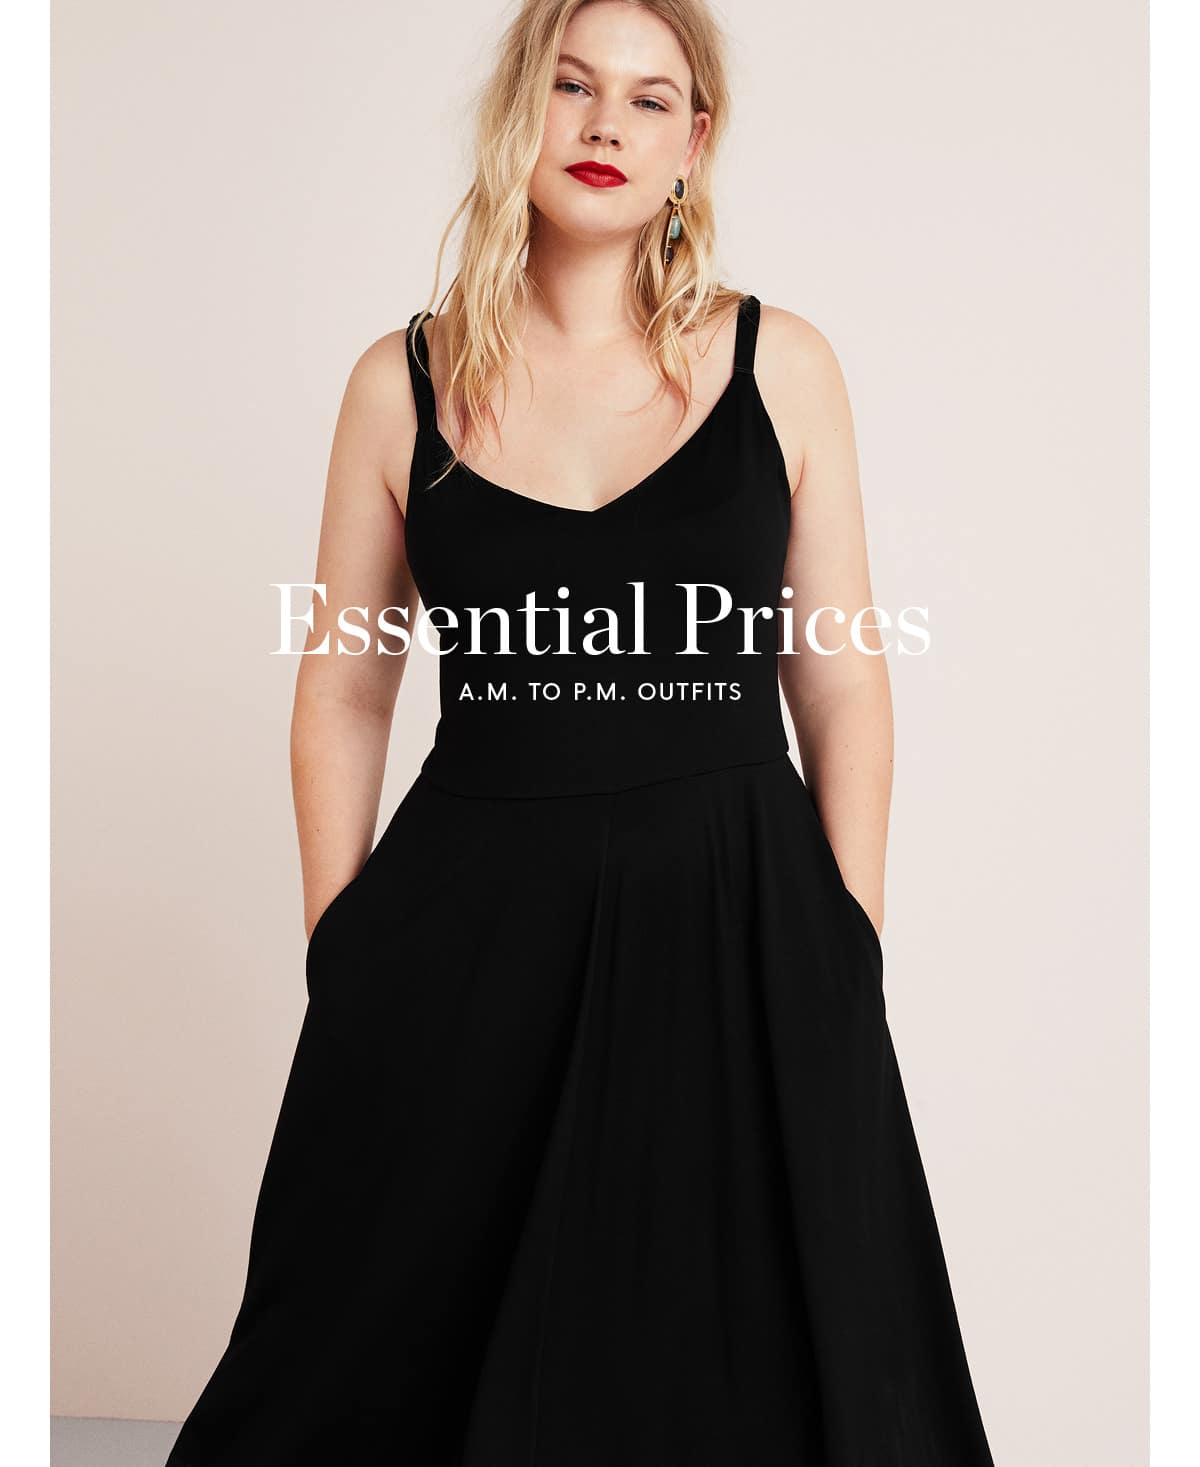 Dresses from